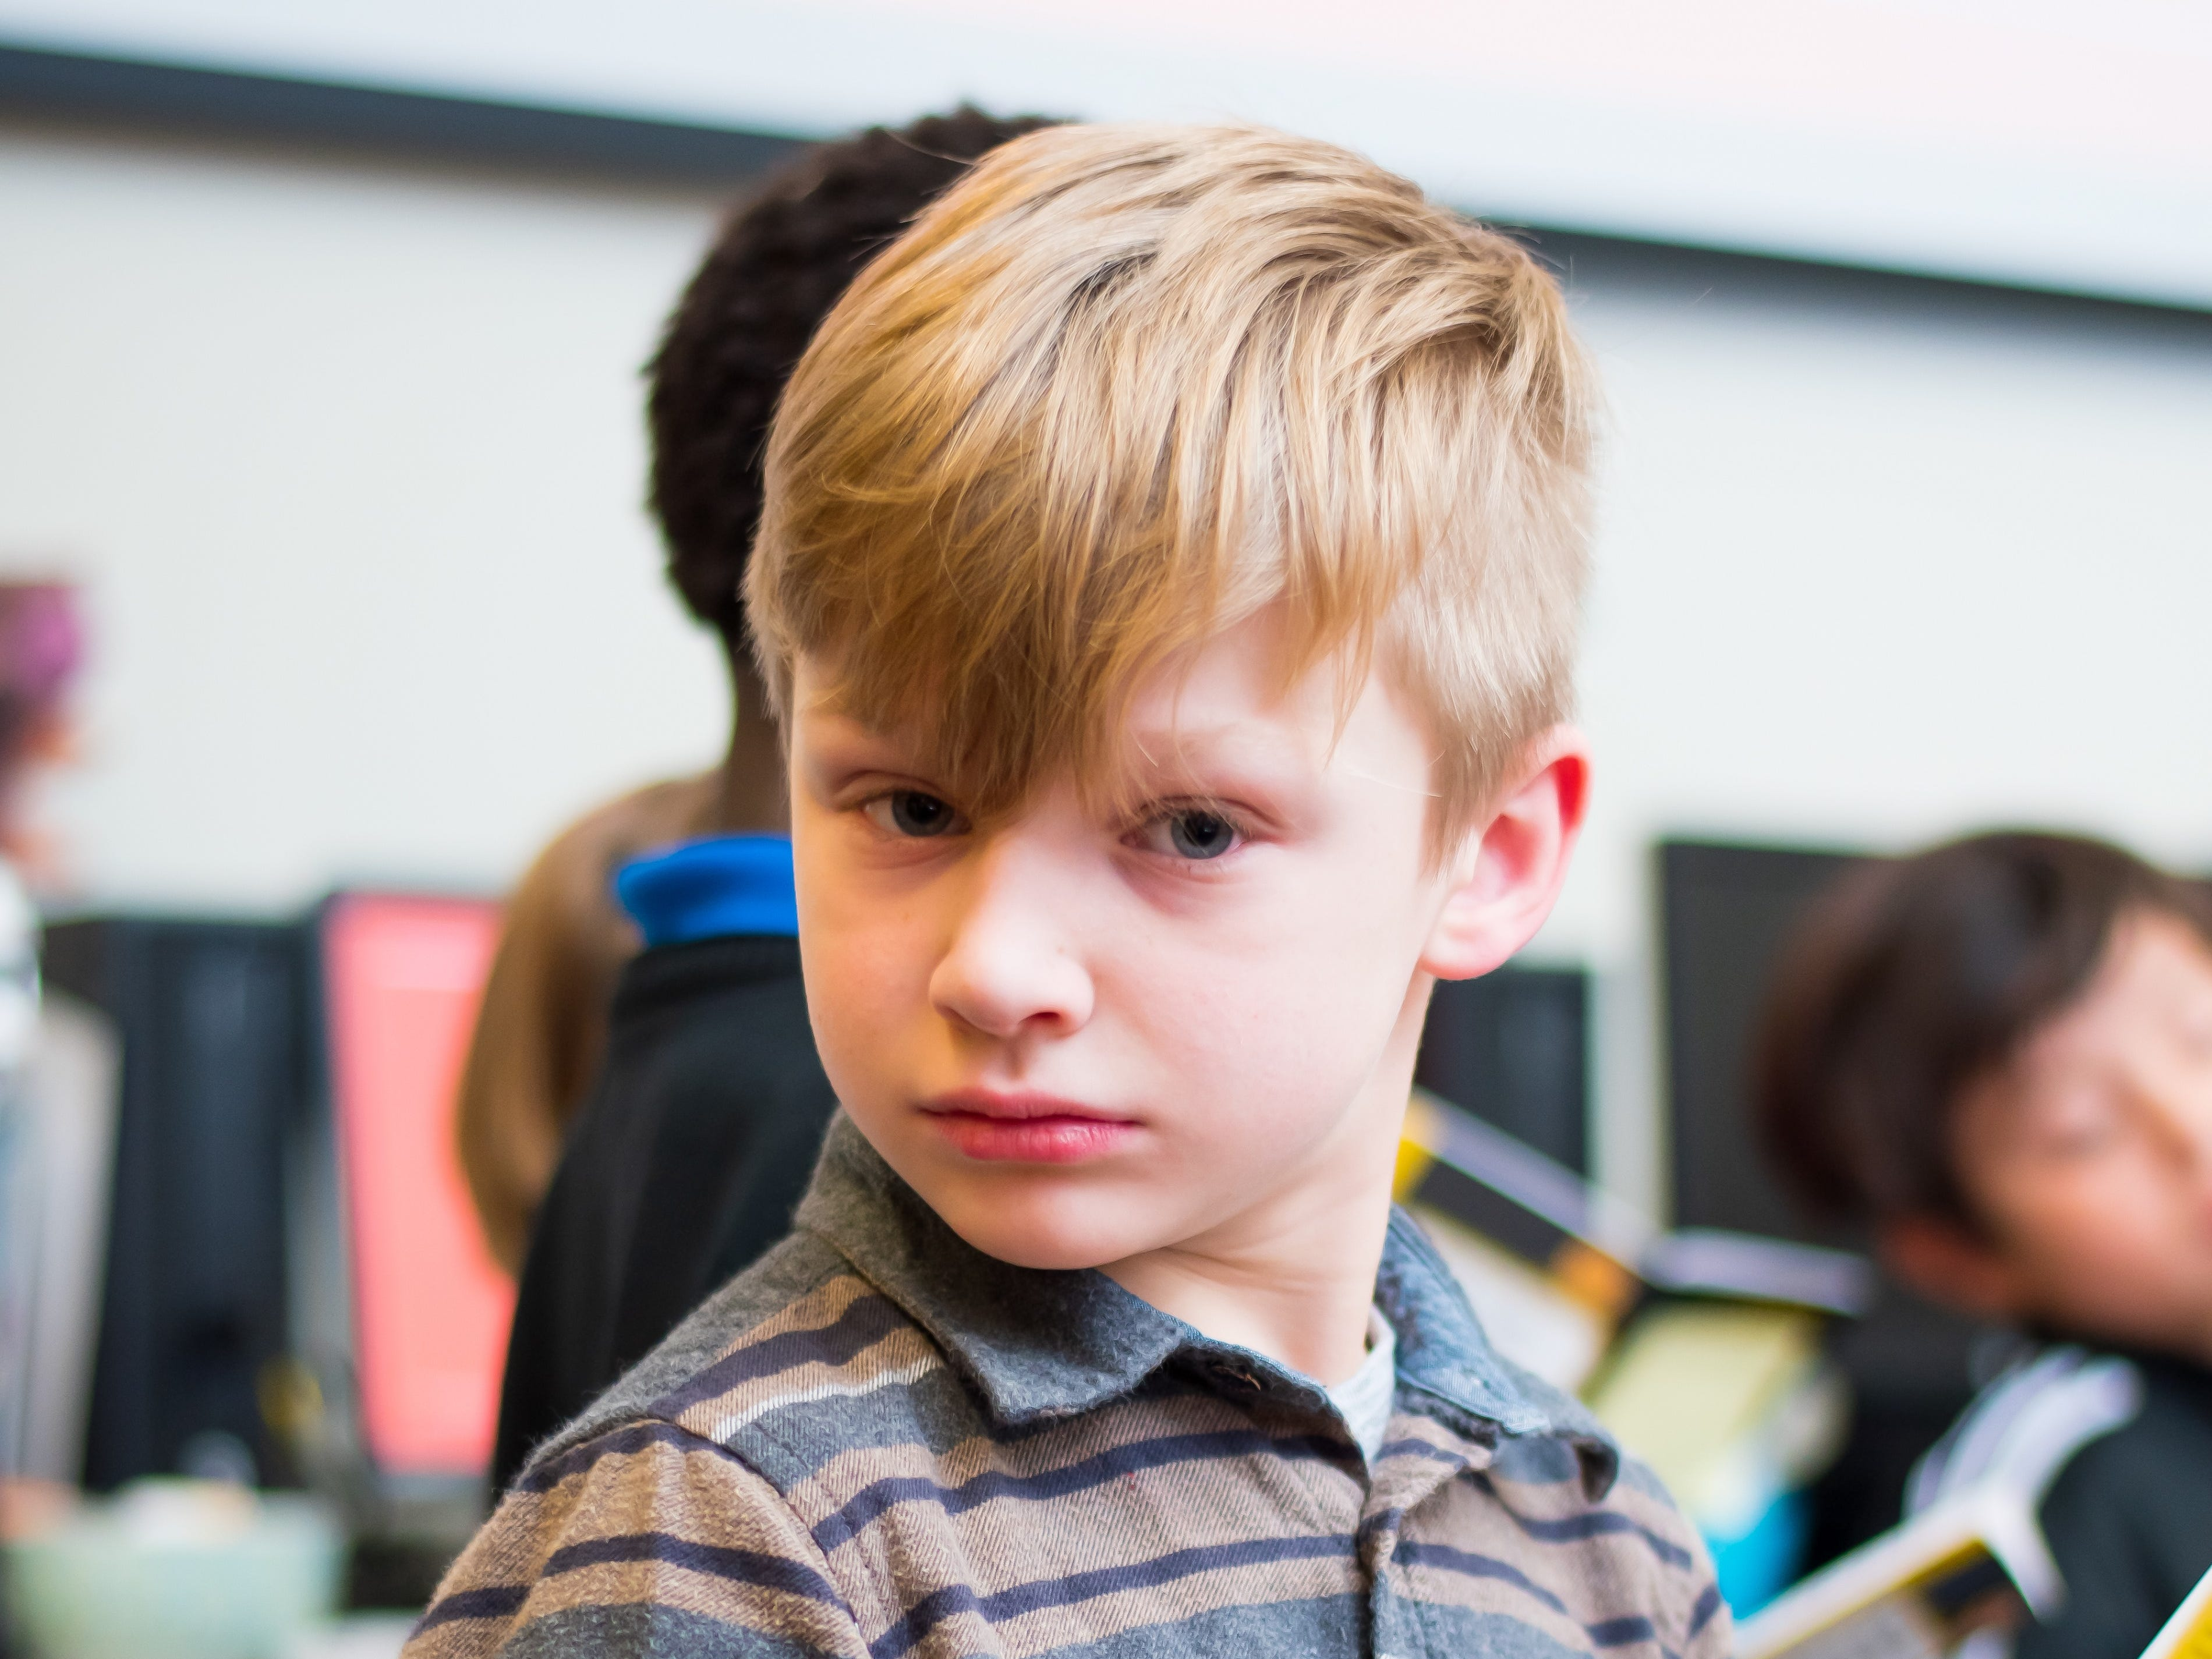 Levi McNeece, 8, of Clive waits to read his part at the Celebrate Crestview event on Tuesday, Dec. 11, 2018 at Crestview School of Inquiry in Clive. Students learned the history of immigration in Clive and the impact it has had on Crestview.